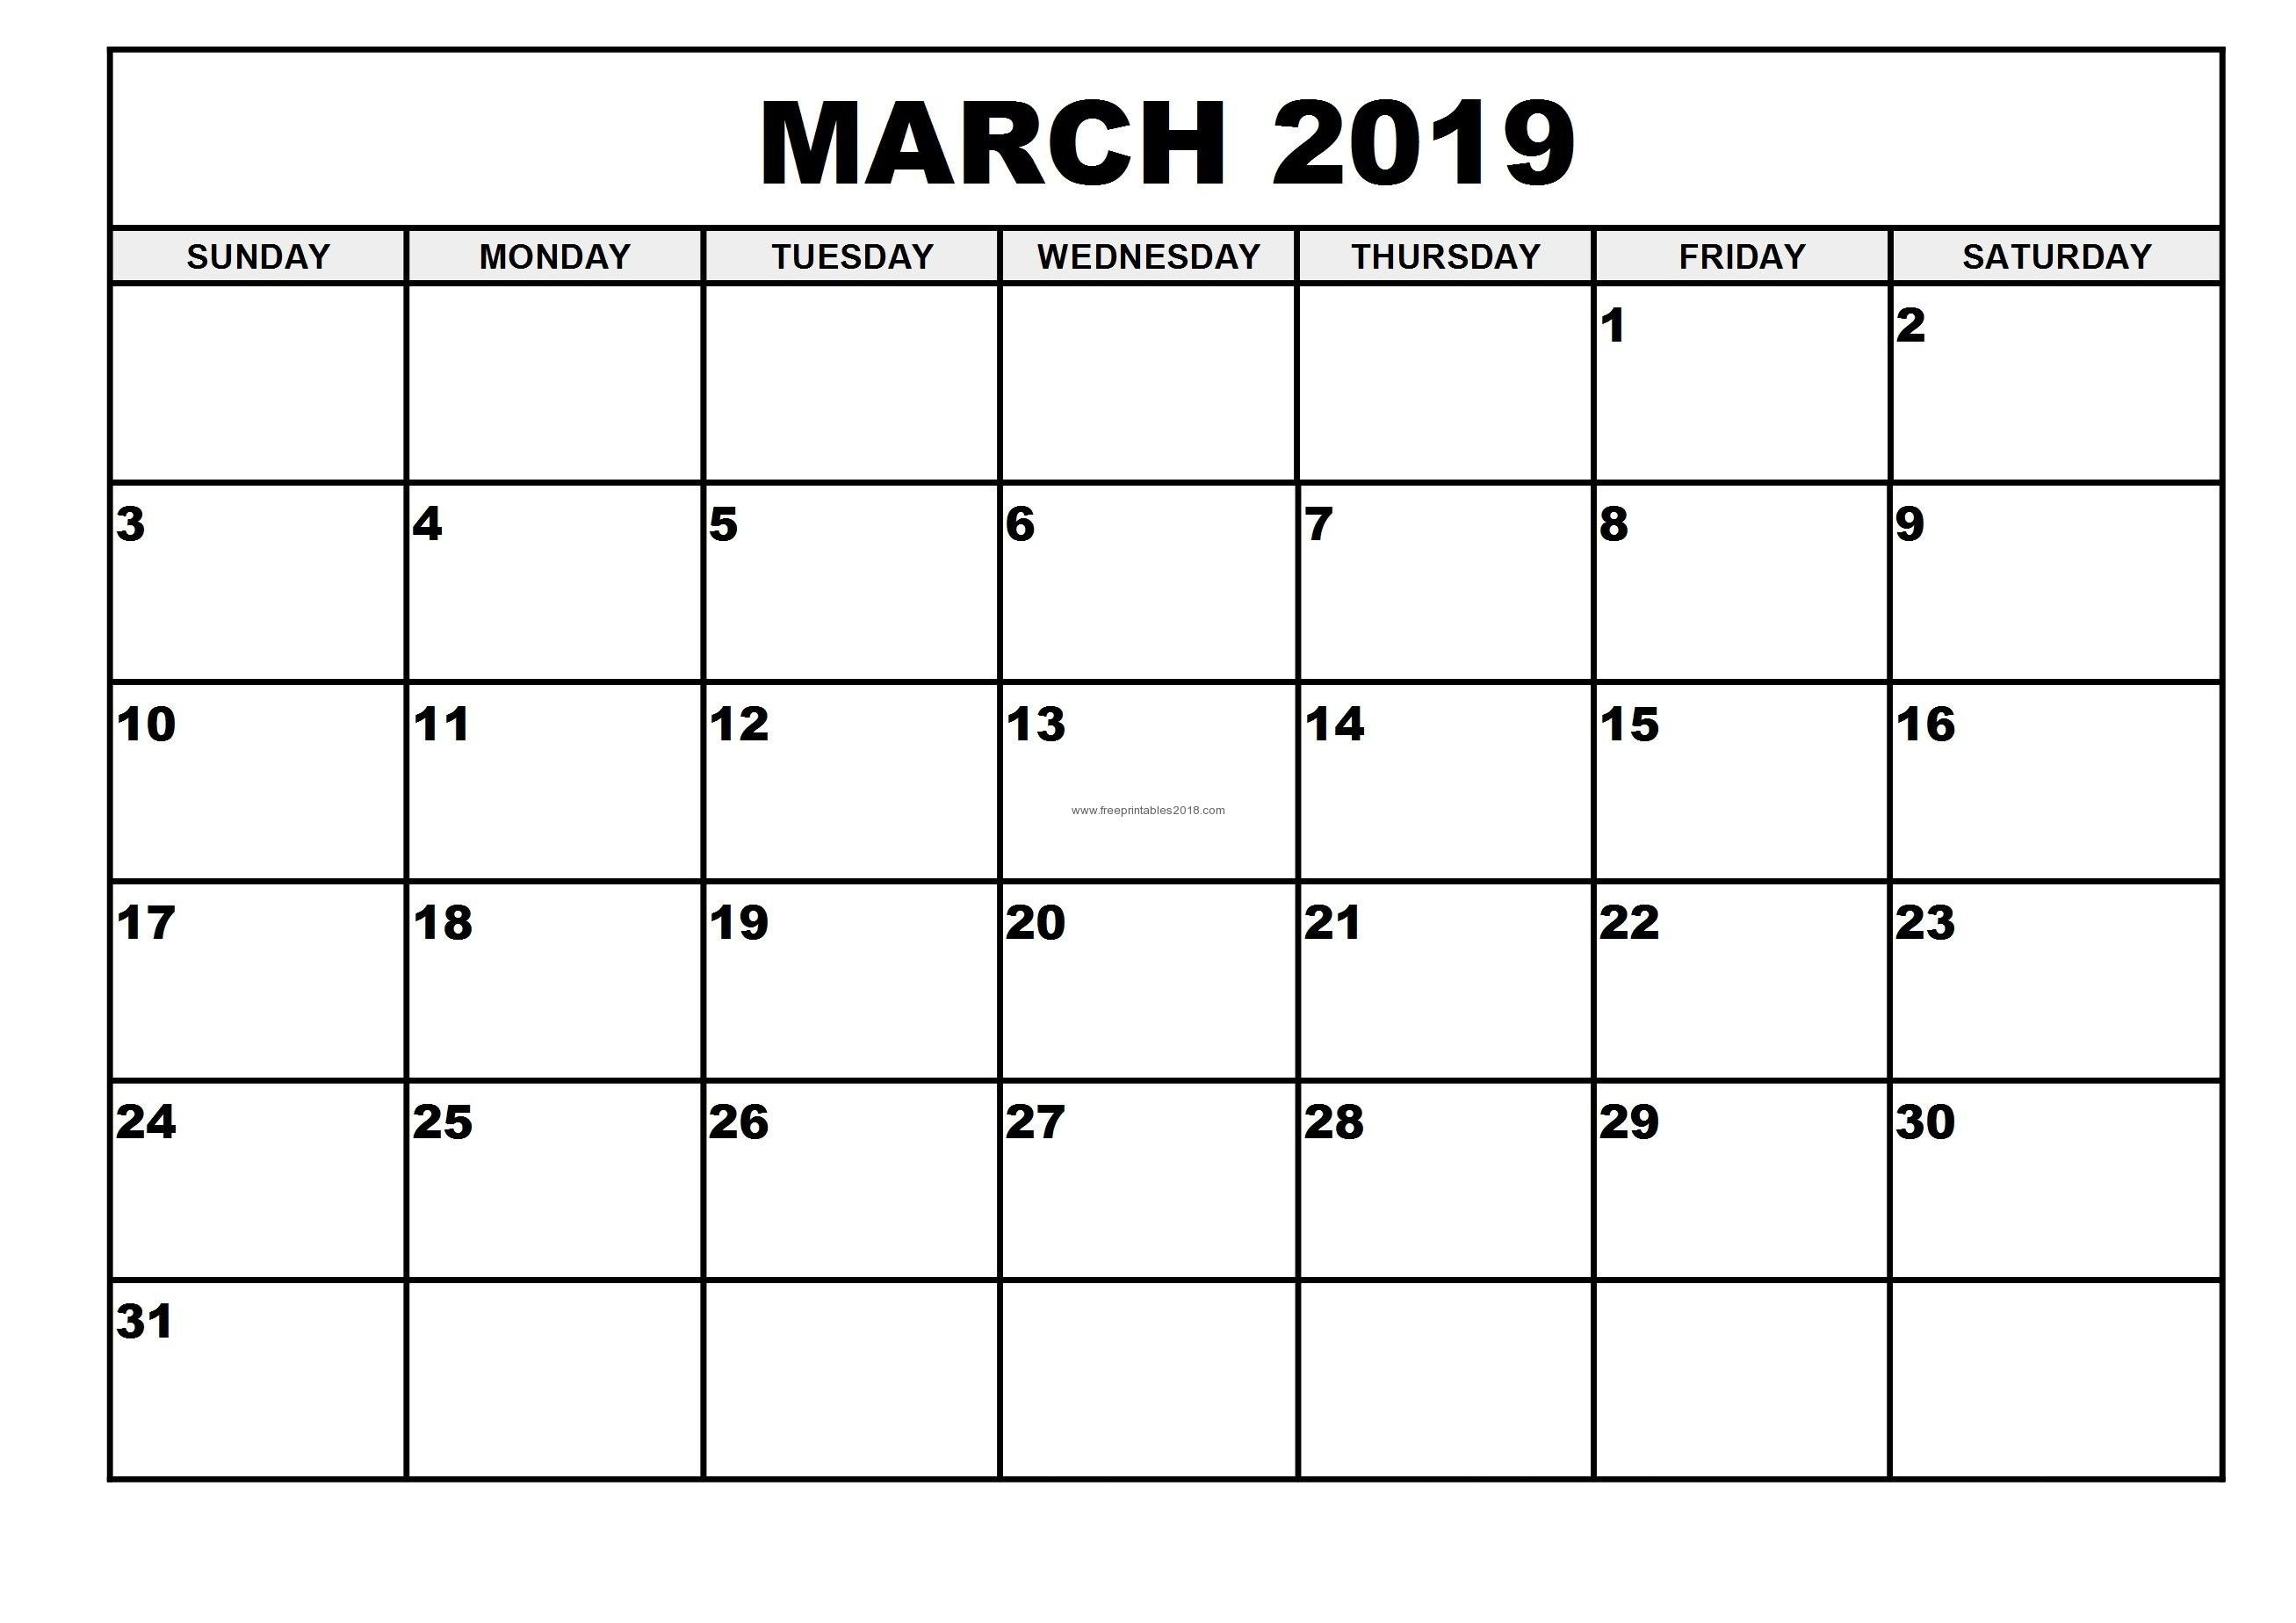 Free Printable Calendar March 2019 2019 Monthly Printable Calendar Free Printable Calendar By Month